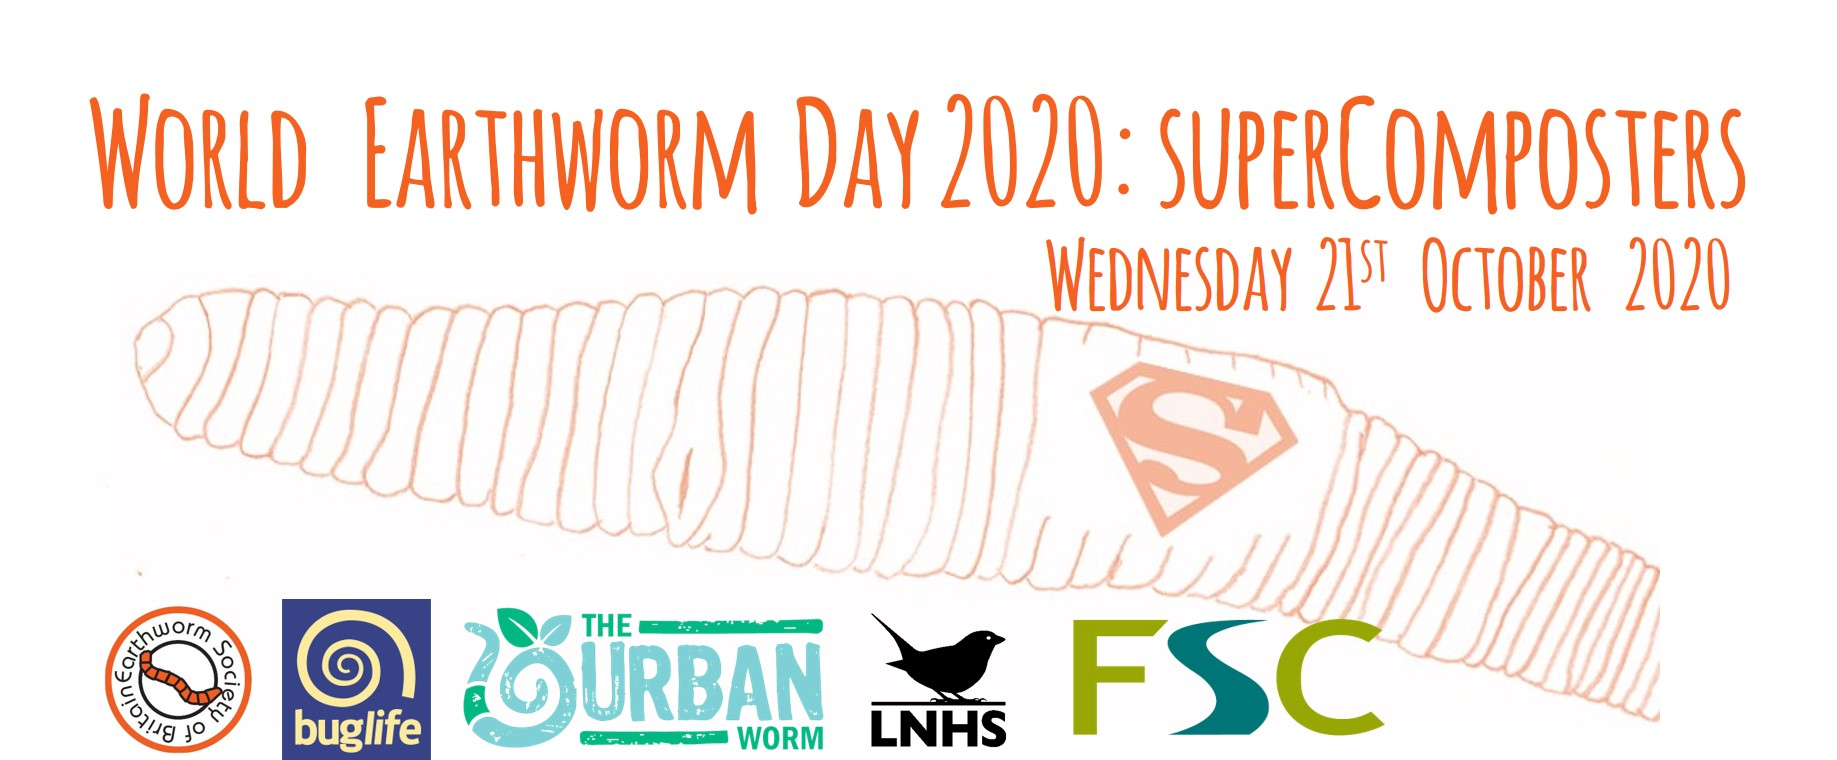 World Earthworm Day 2020 #SuperComposters banner